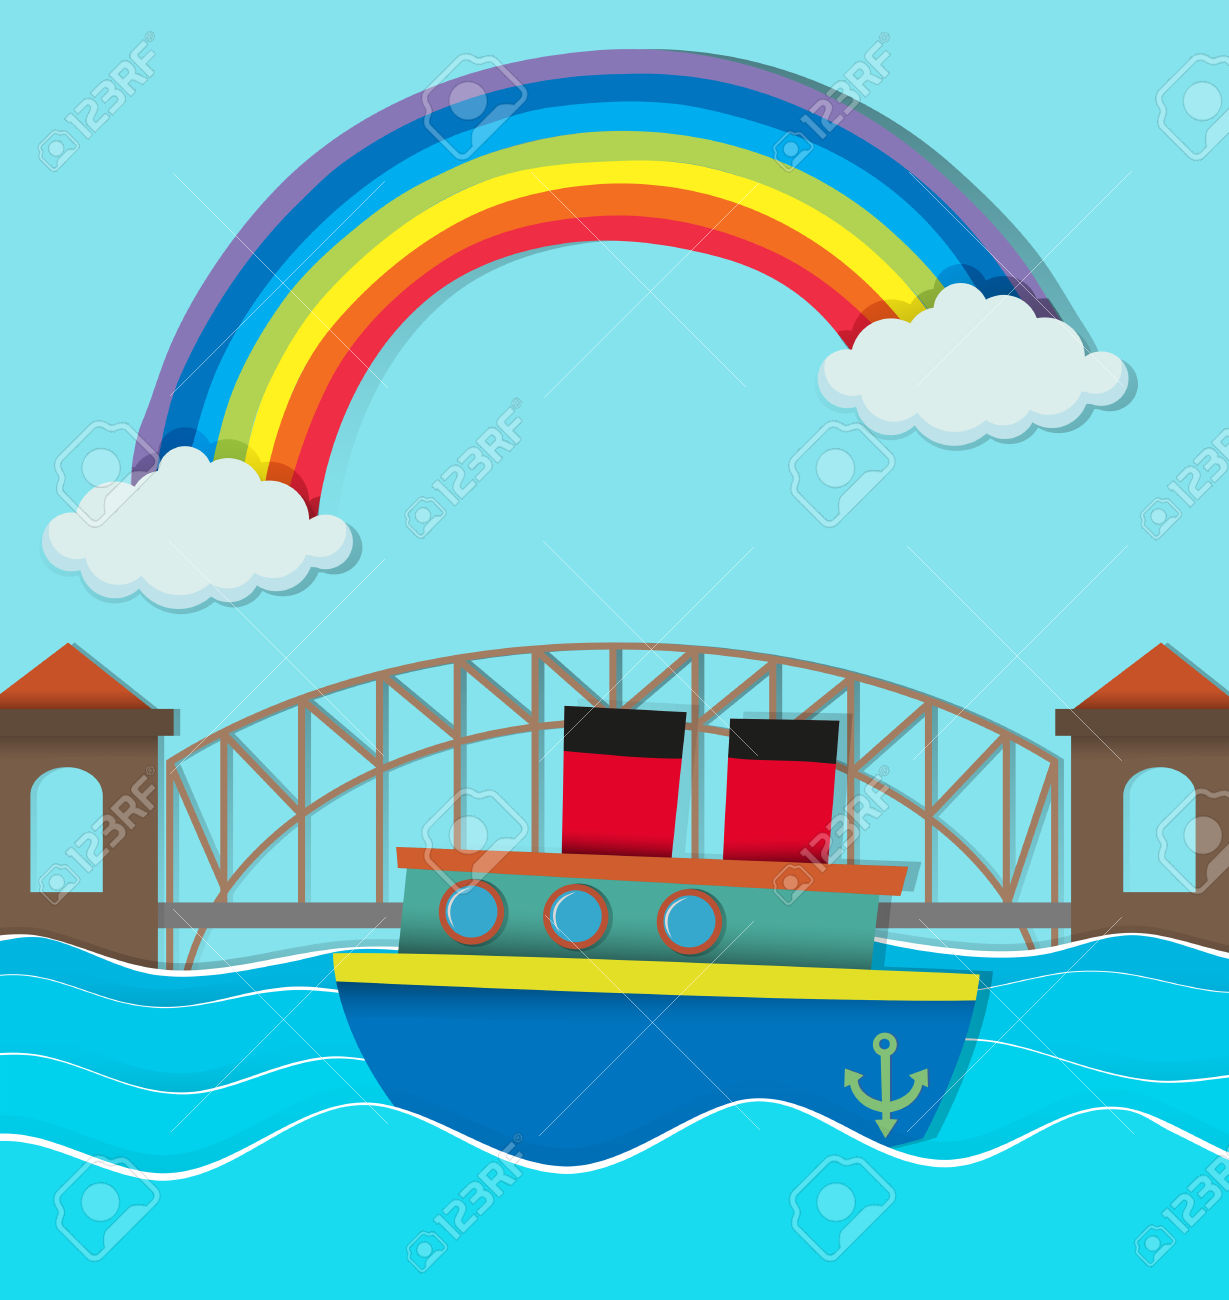 Bridge Over River And Boat On Water Illustration Royalty Free.